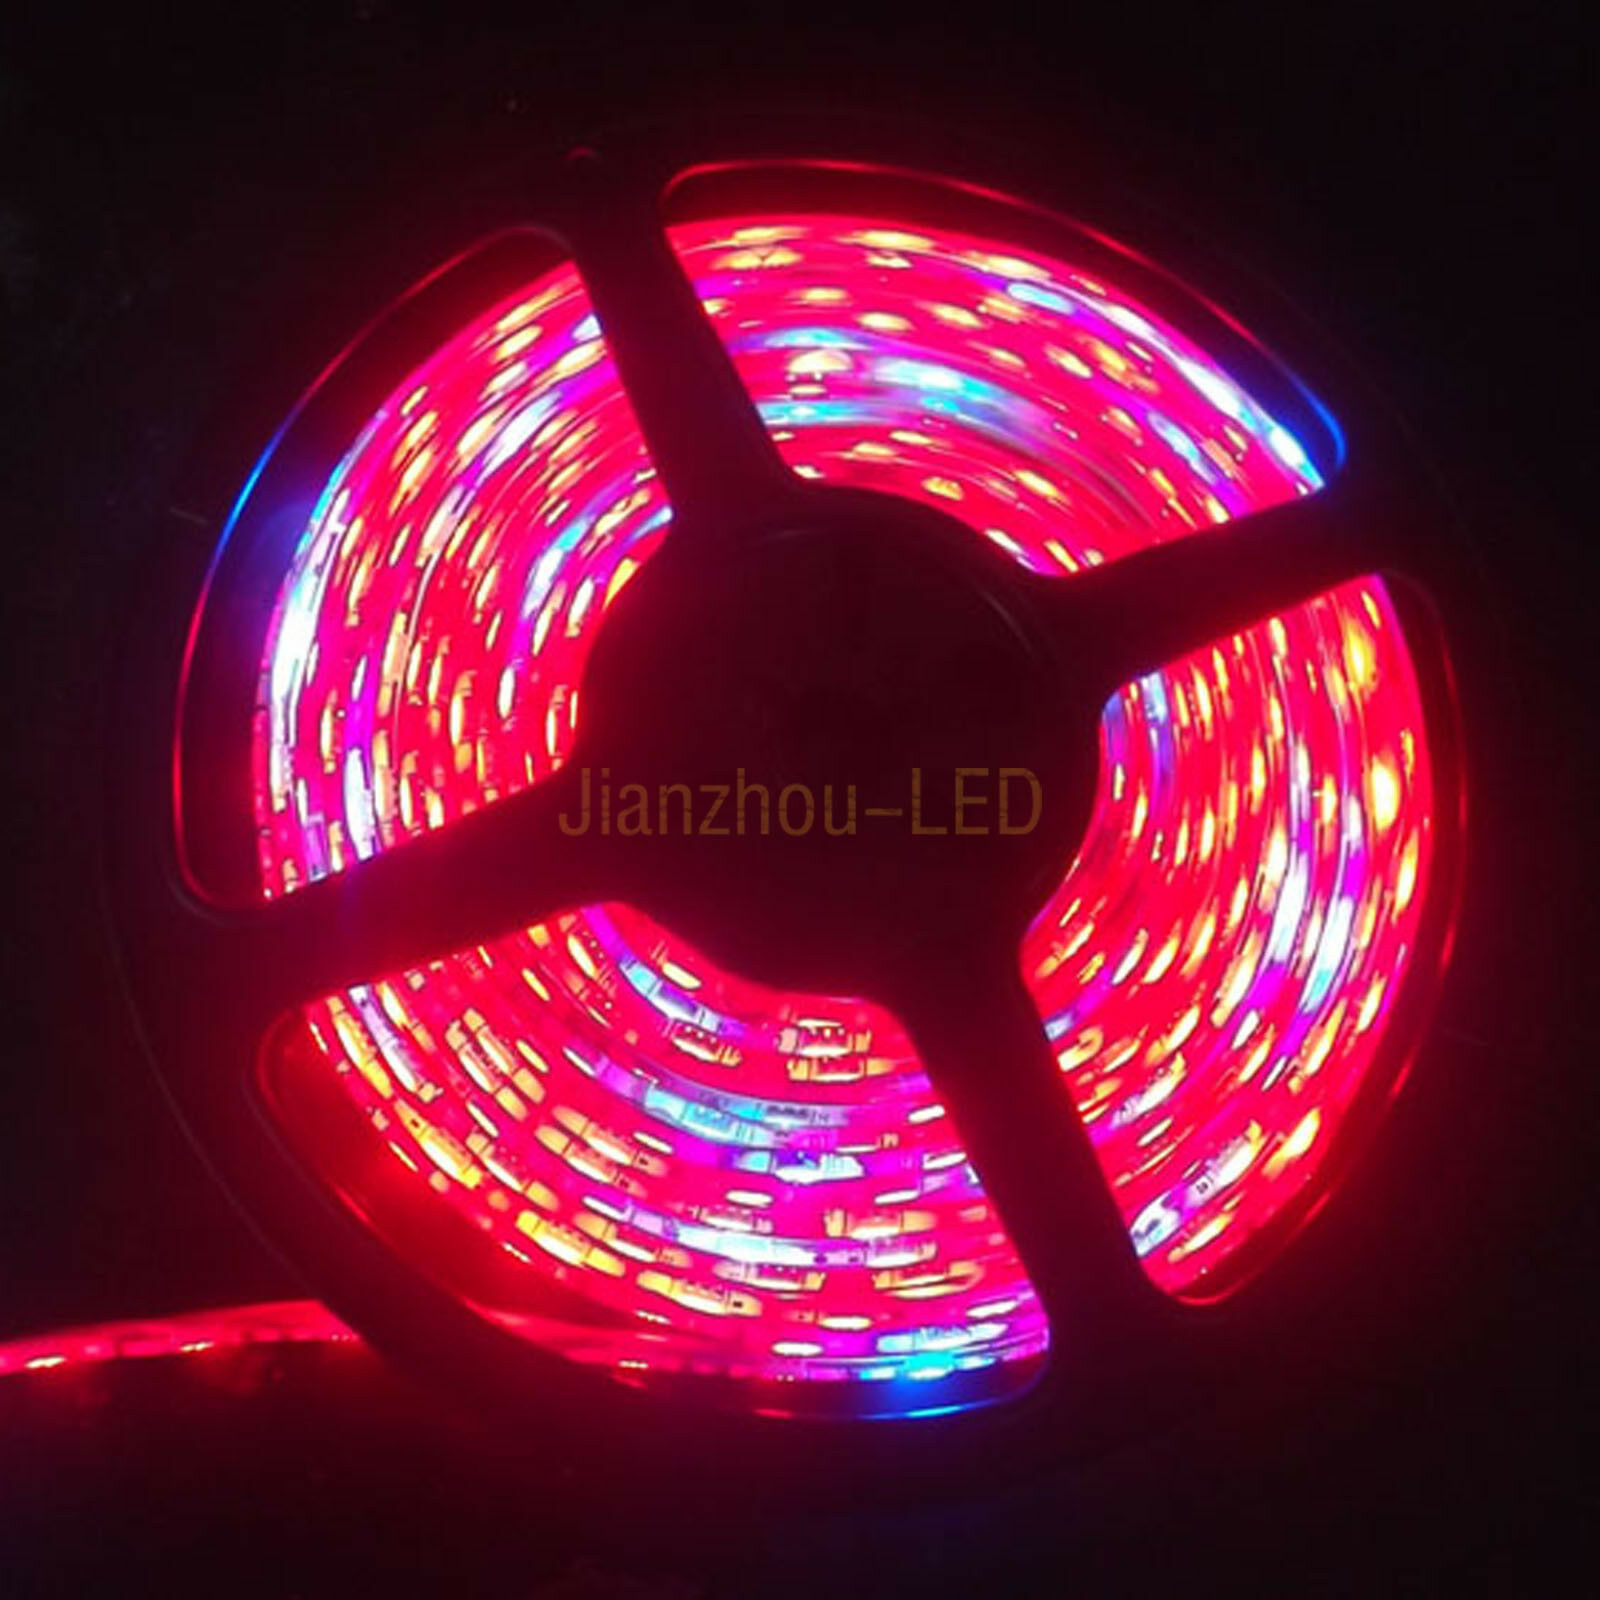 5m 5050 300 LED Strip Light Plant Growing Hydroponic Red Blue 5 1